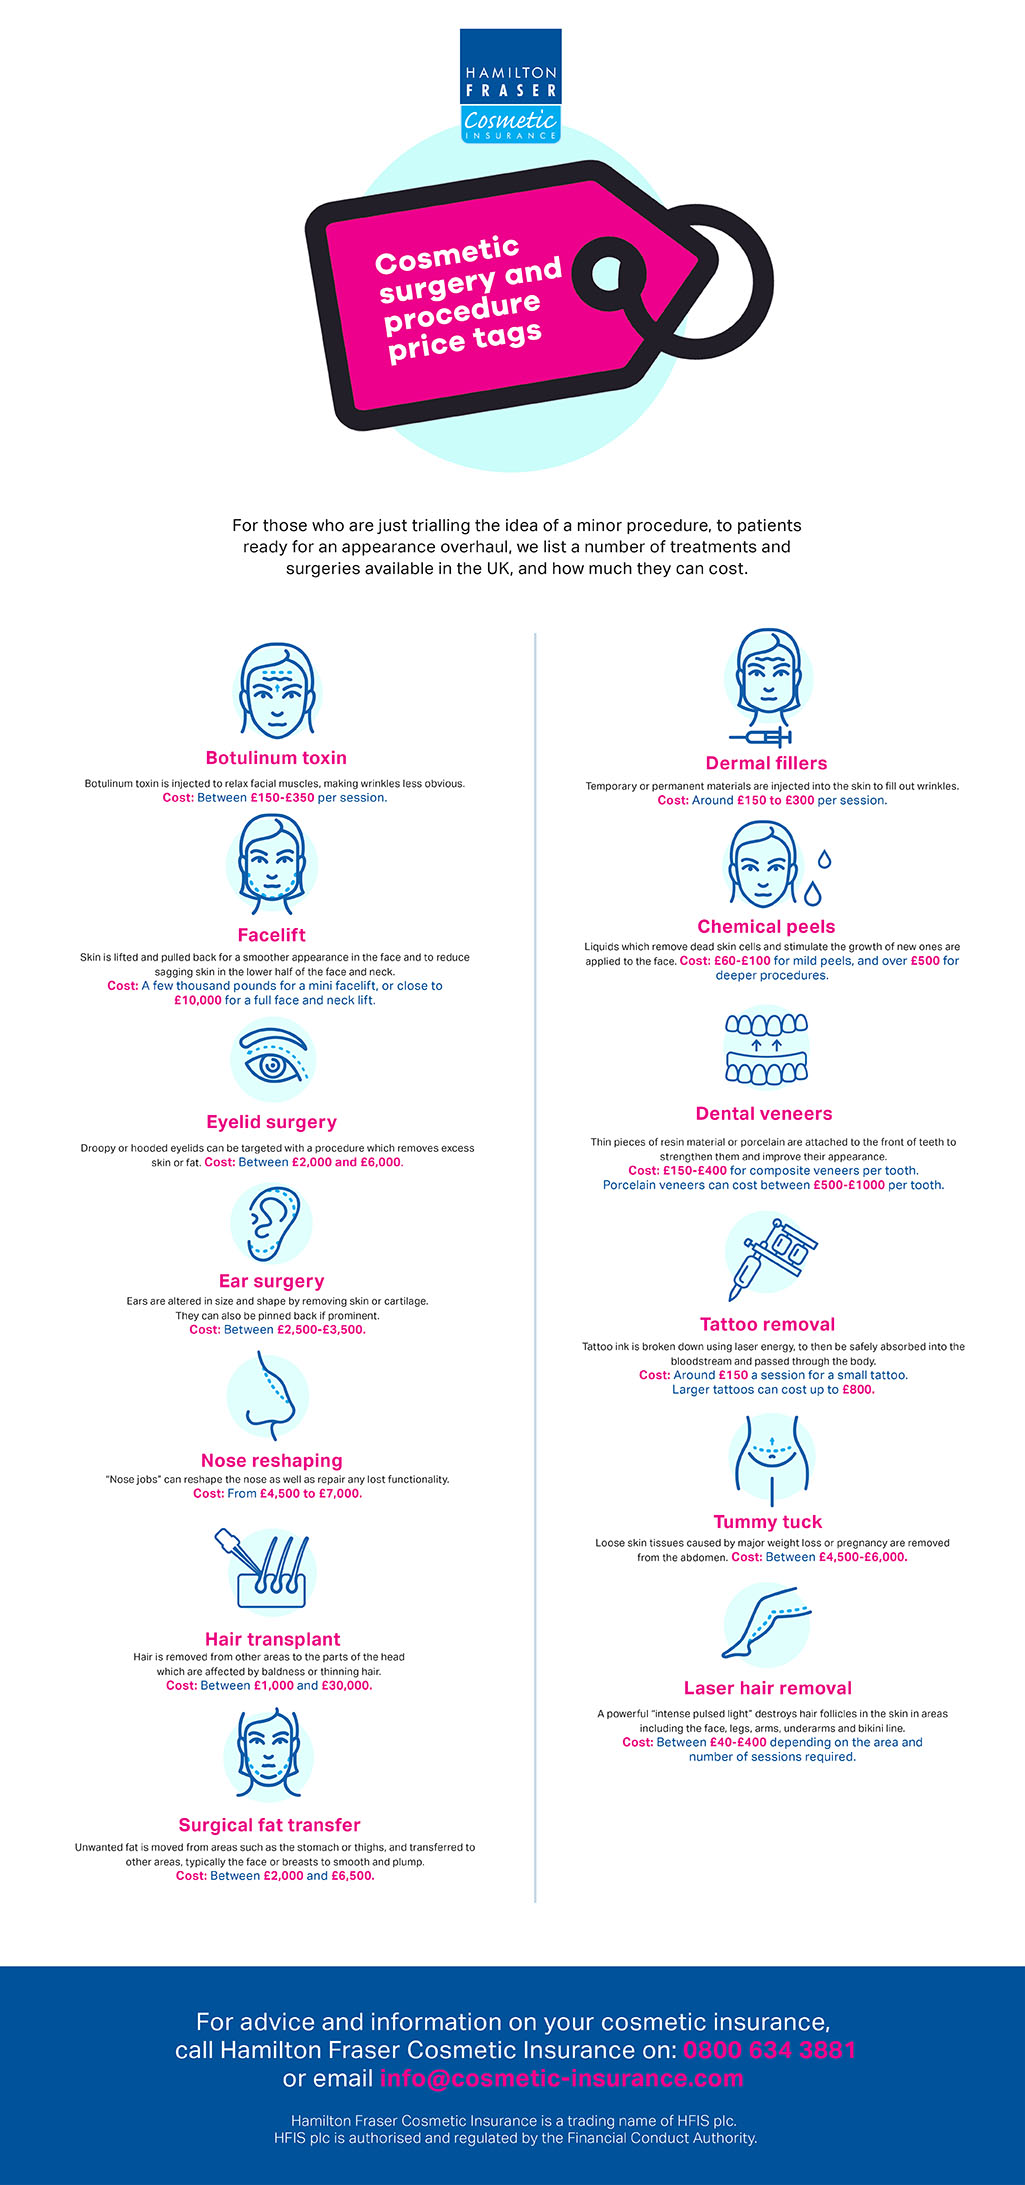 Cosmetic Surgery and Procedure Price Tags Infographic